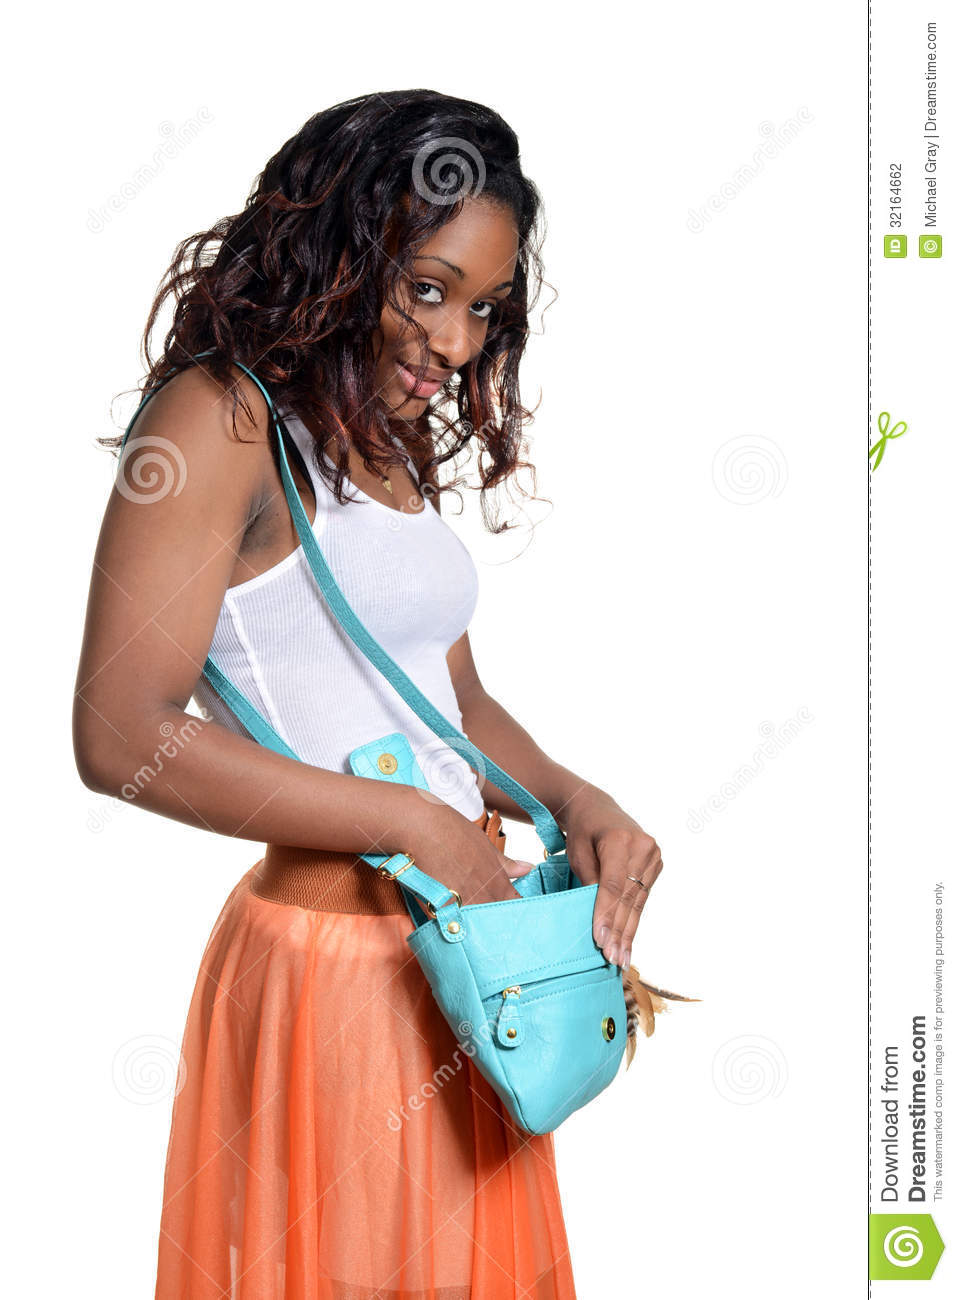 deccf8afe4c Black Woman Looking In Her Purse Stock Photo - Image of looking ...